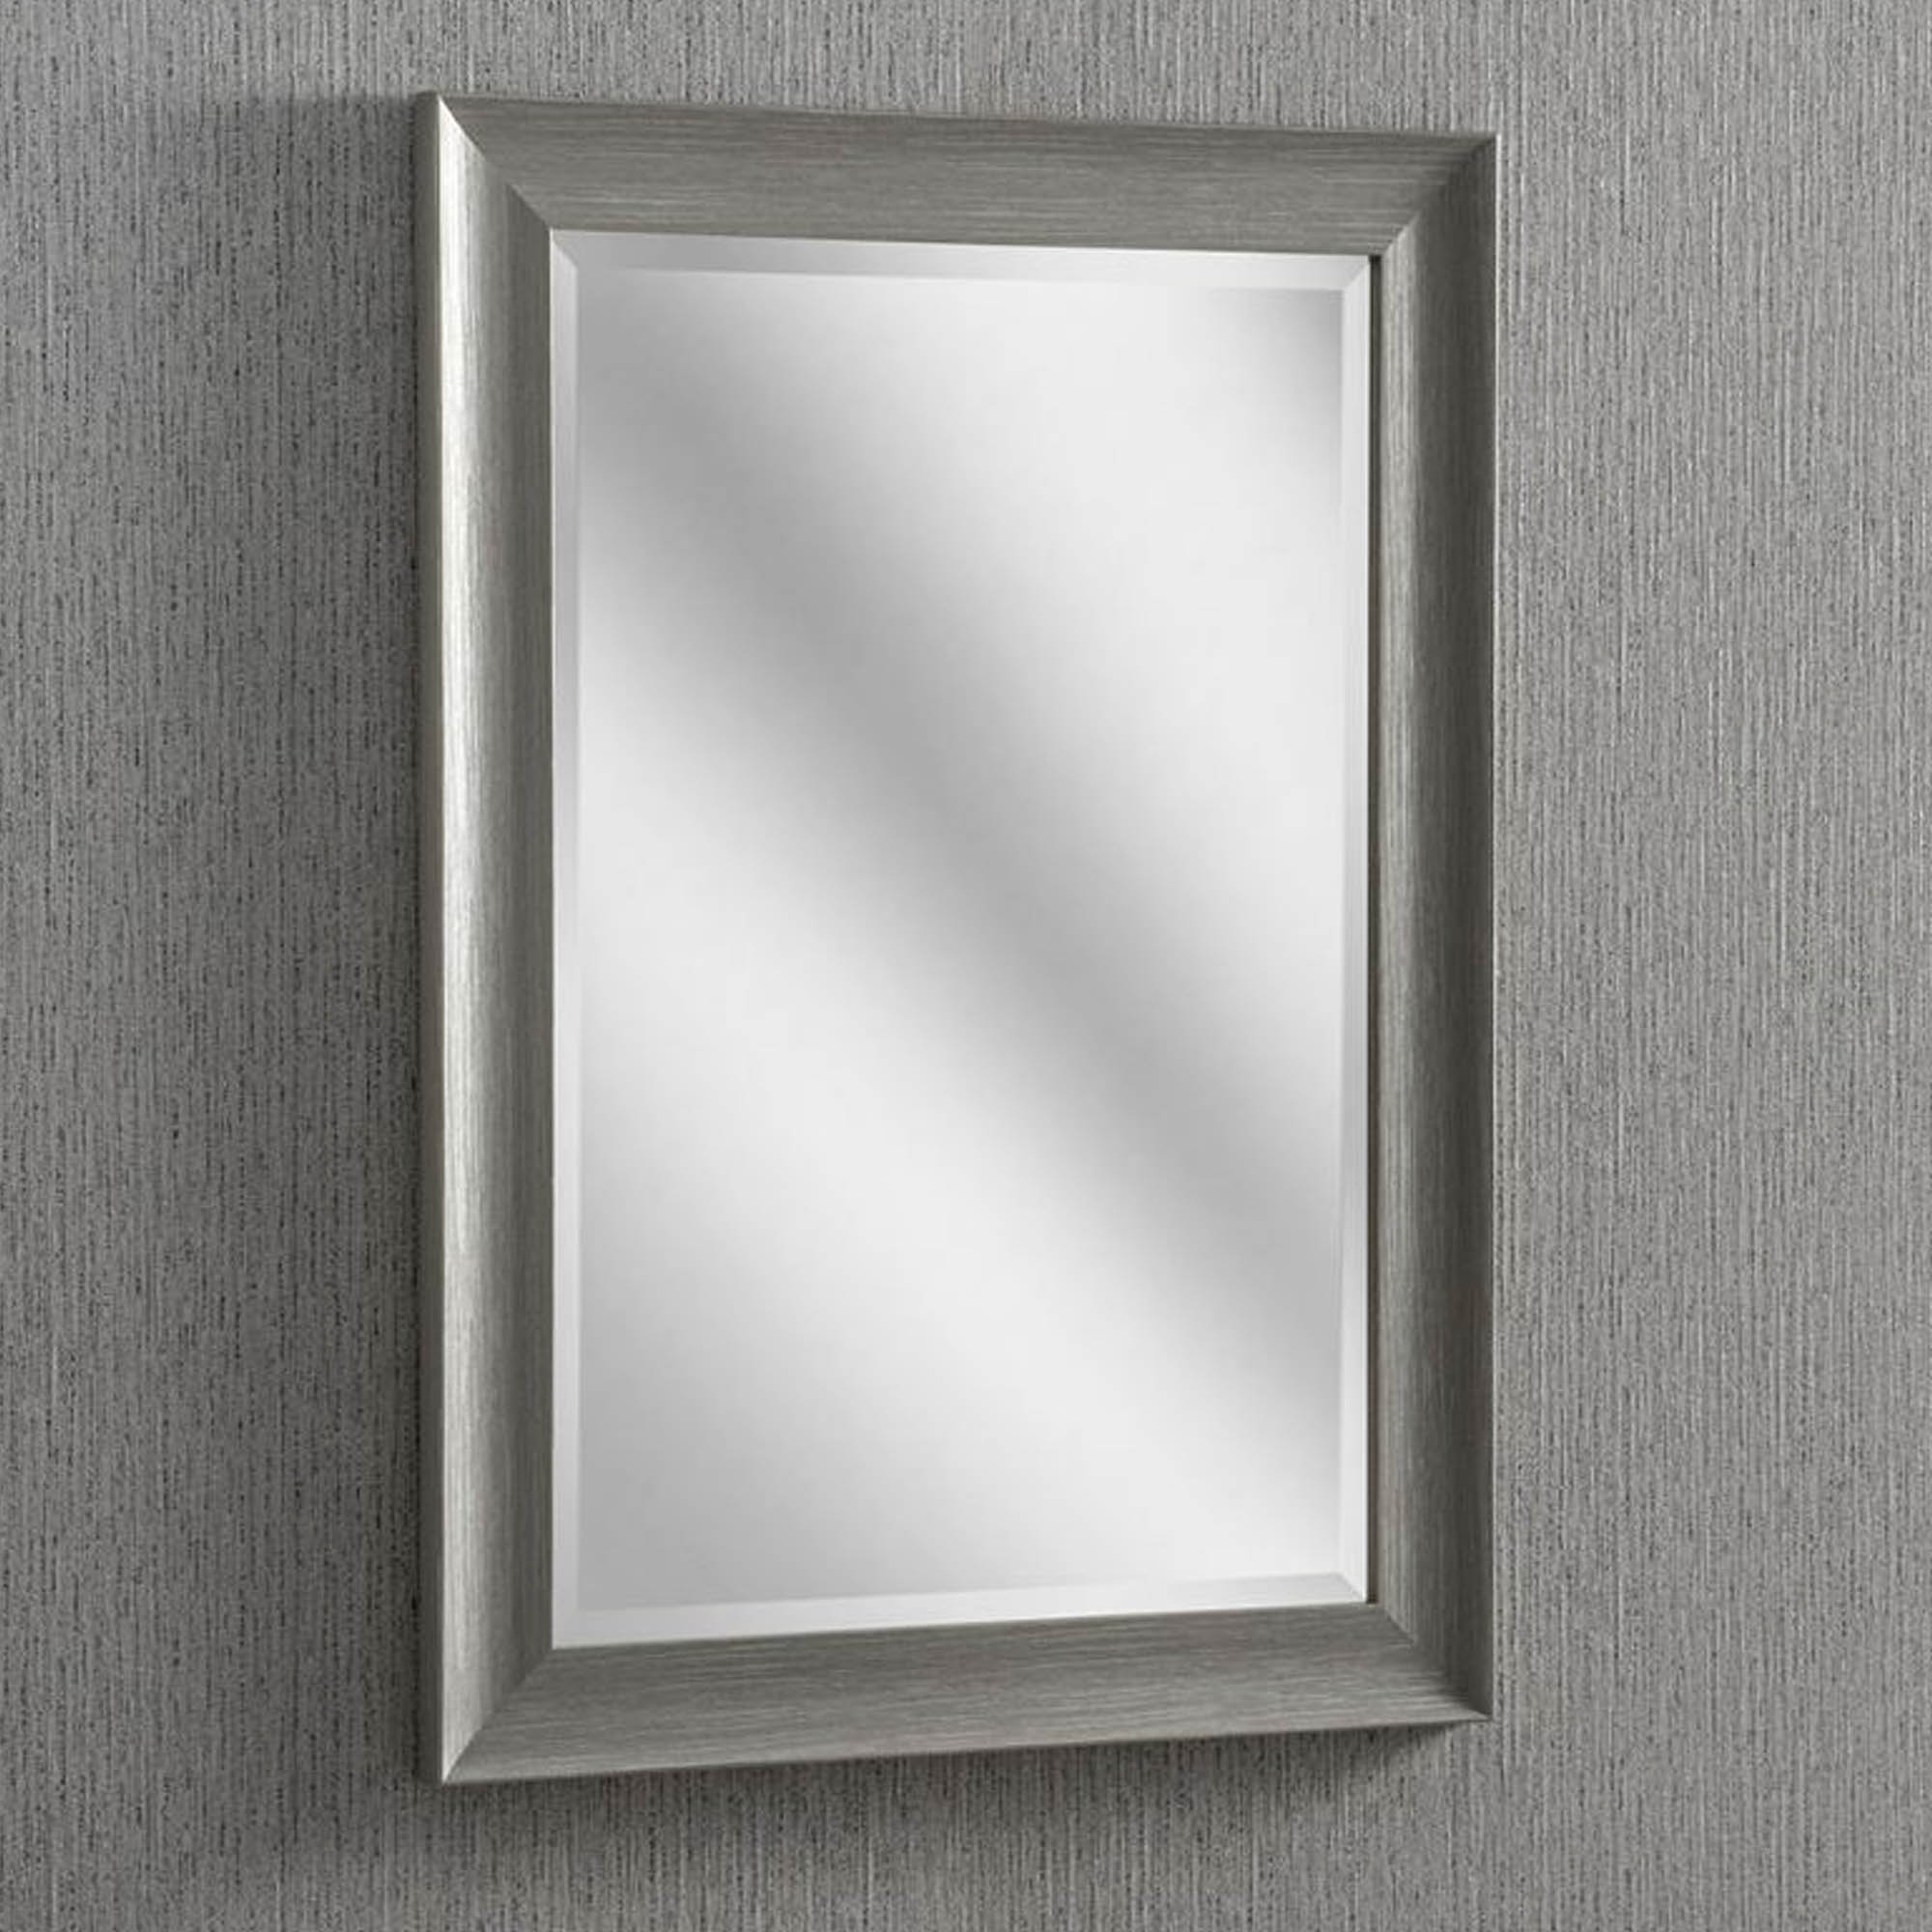 Rectangular Grey Modern & Contemporary Wall Mirror Inside Modern Rectangle Wall Mirrors (View 9 of 20)